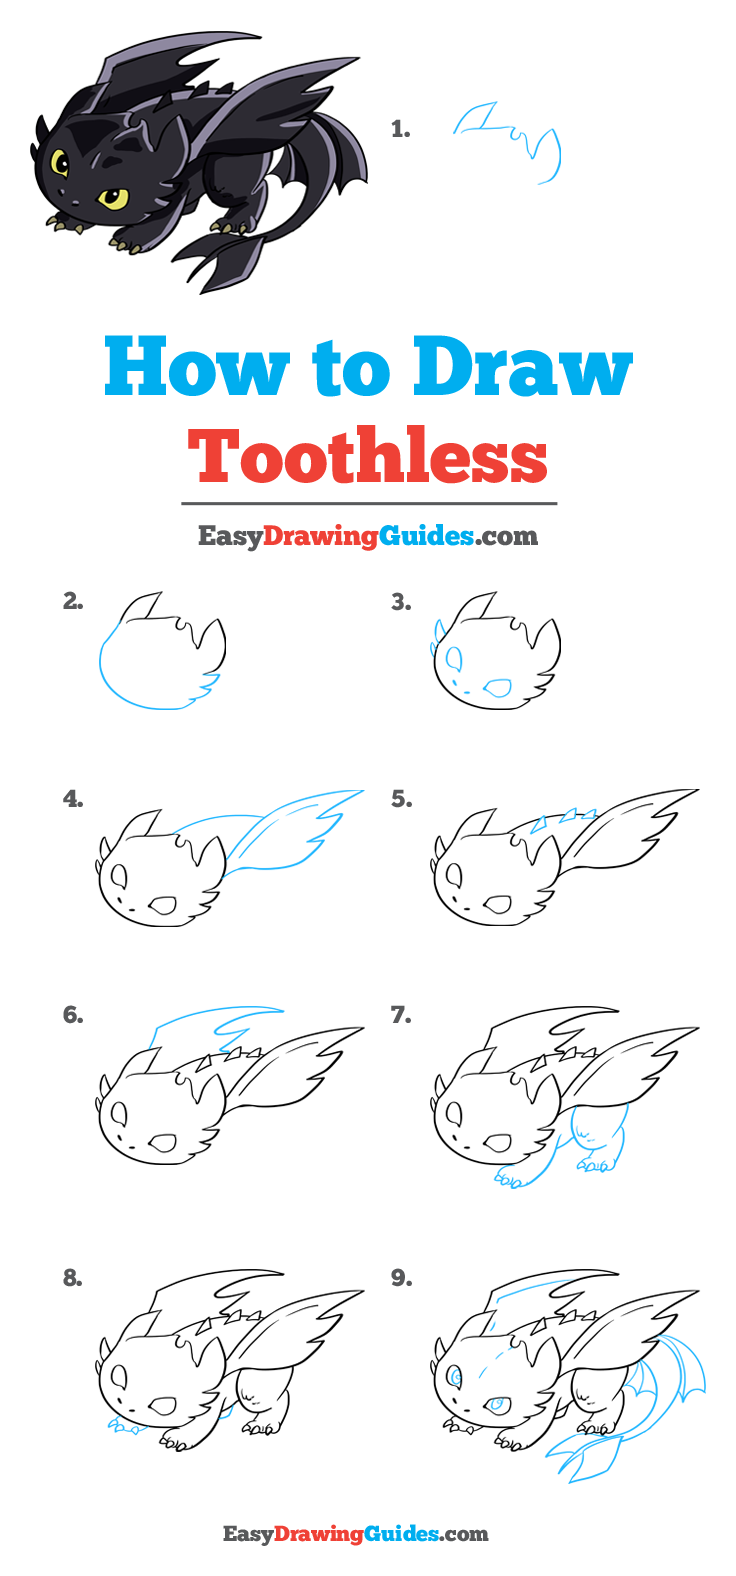 How to Draw Toothless from How to Train your Dragon - Really Easy Drawing Tutorial#dragon #draw #drawing #easy #really #toothless #train #tutorial